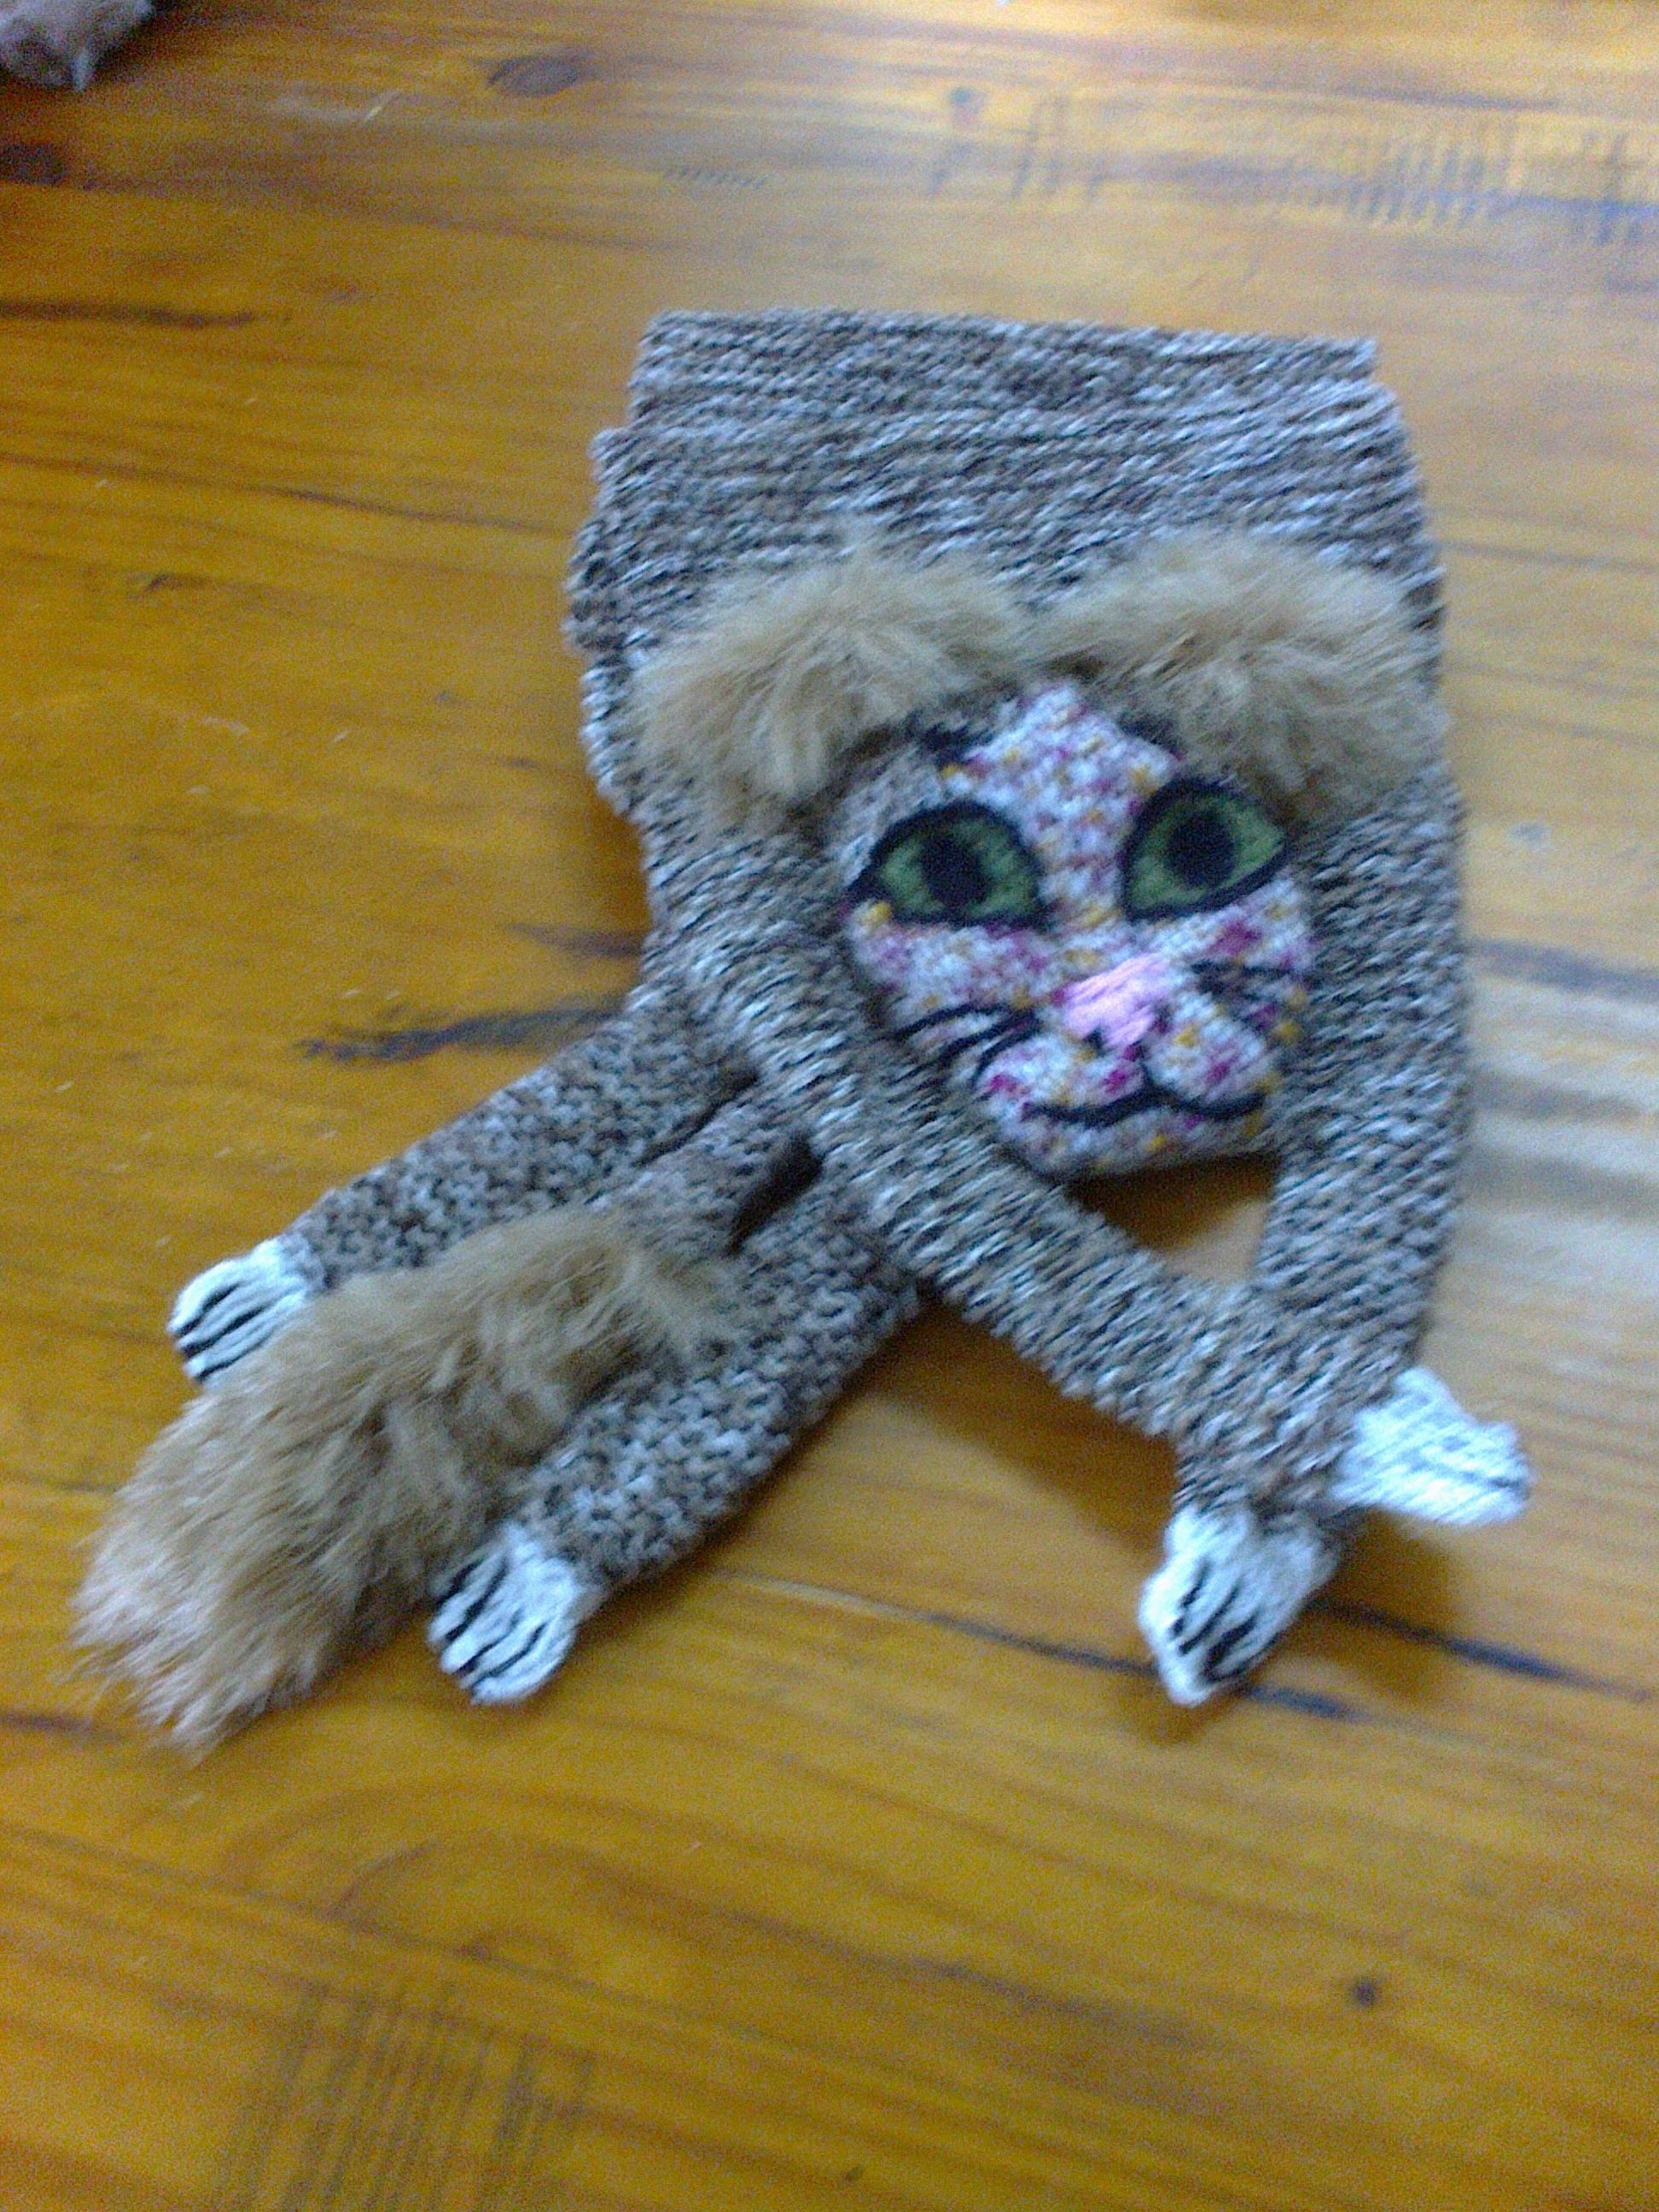 SOME SCARF CATS I HAVE MADE